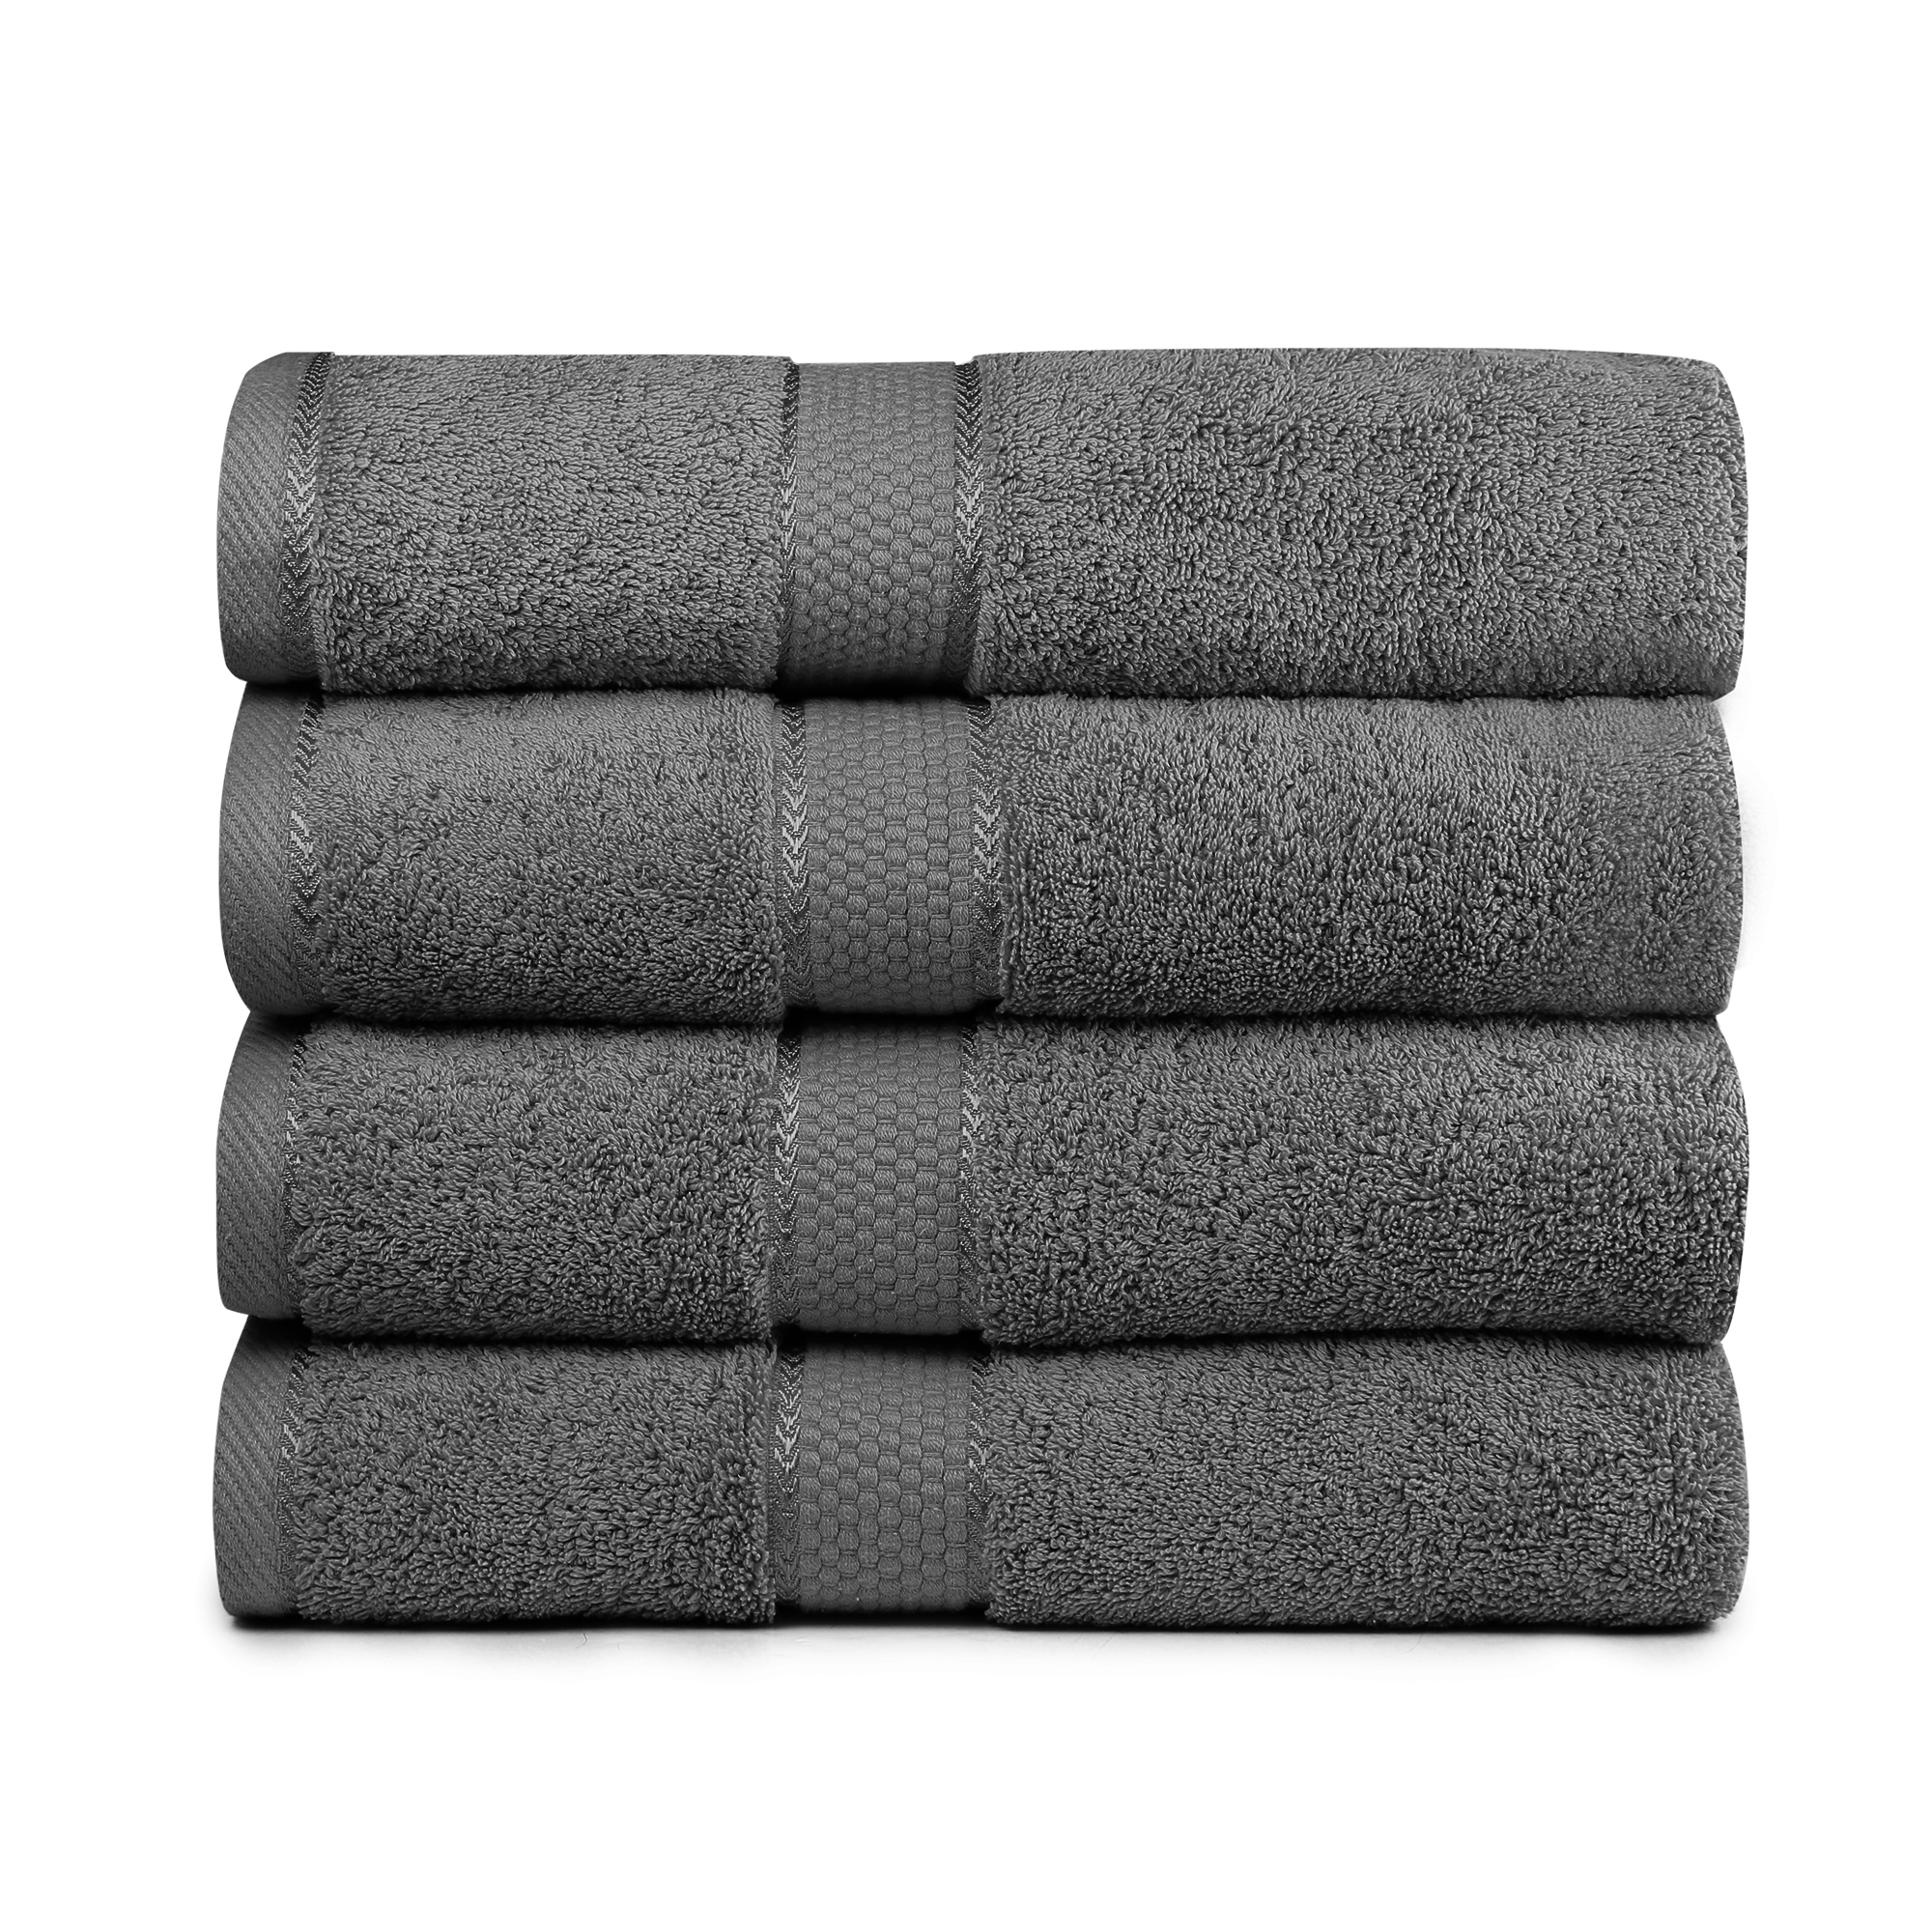 "Bisgal 4-Piece Luxury Bath Towels Set – Super Soft & Durable - 700-GSM - 100% Pure Cotton - Machine Washable & Quick Dry - Lightweight Home, Pool, Gym, Towel - 27"" x 54"" Inch (Grey)"